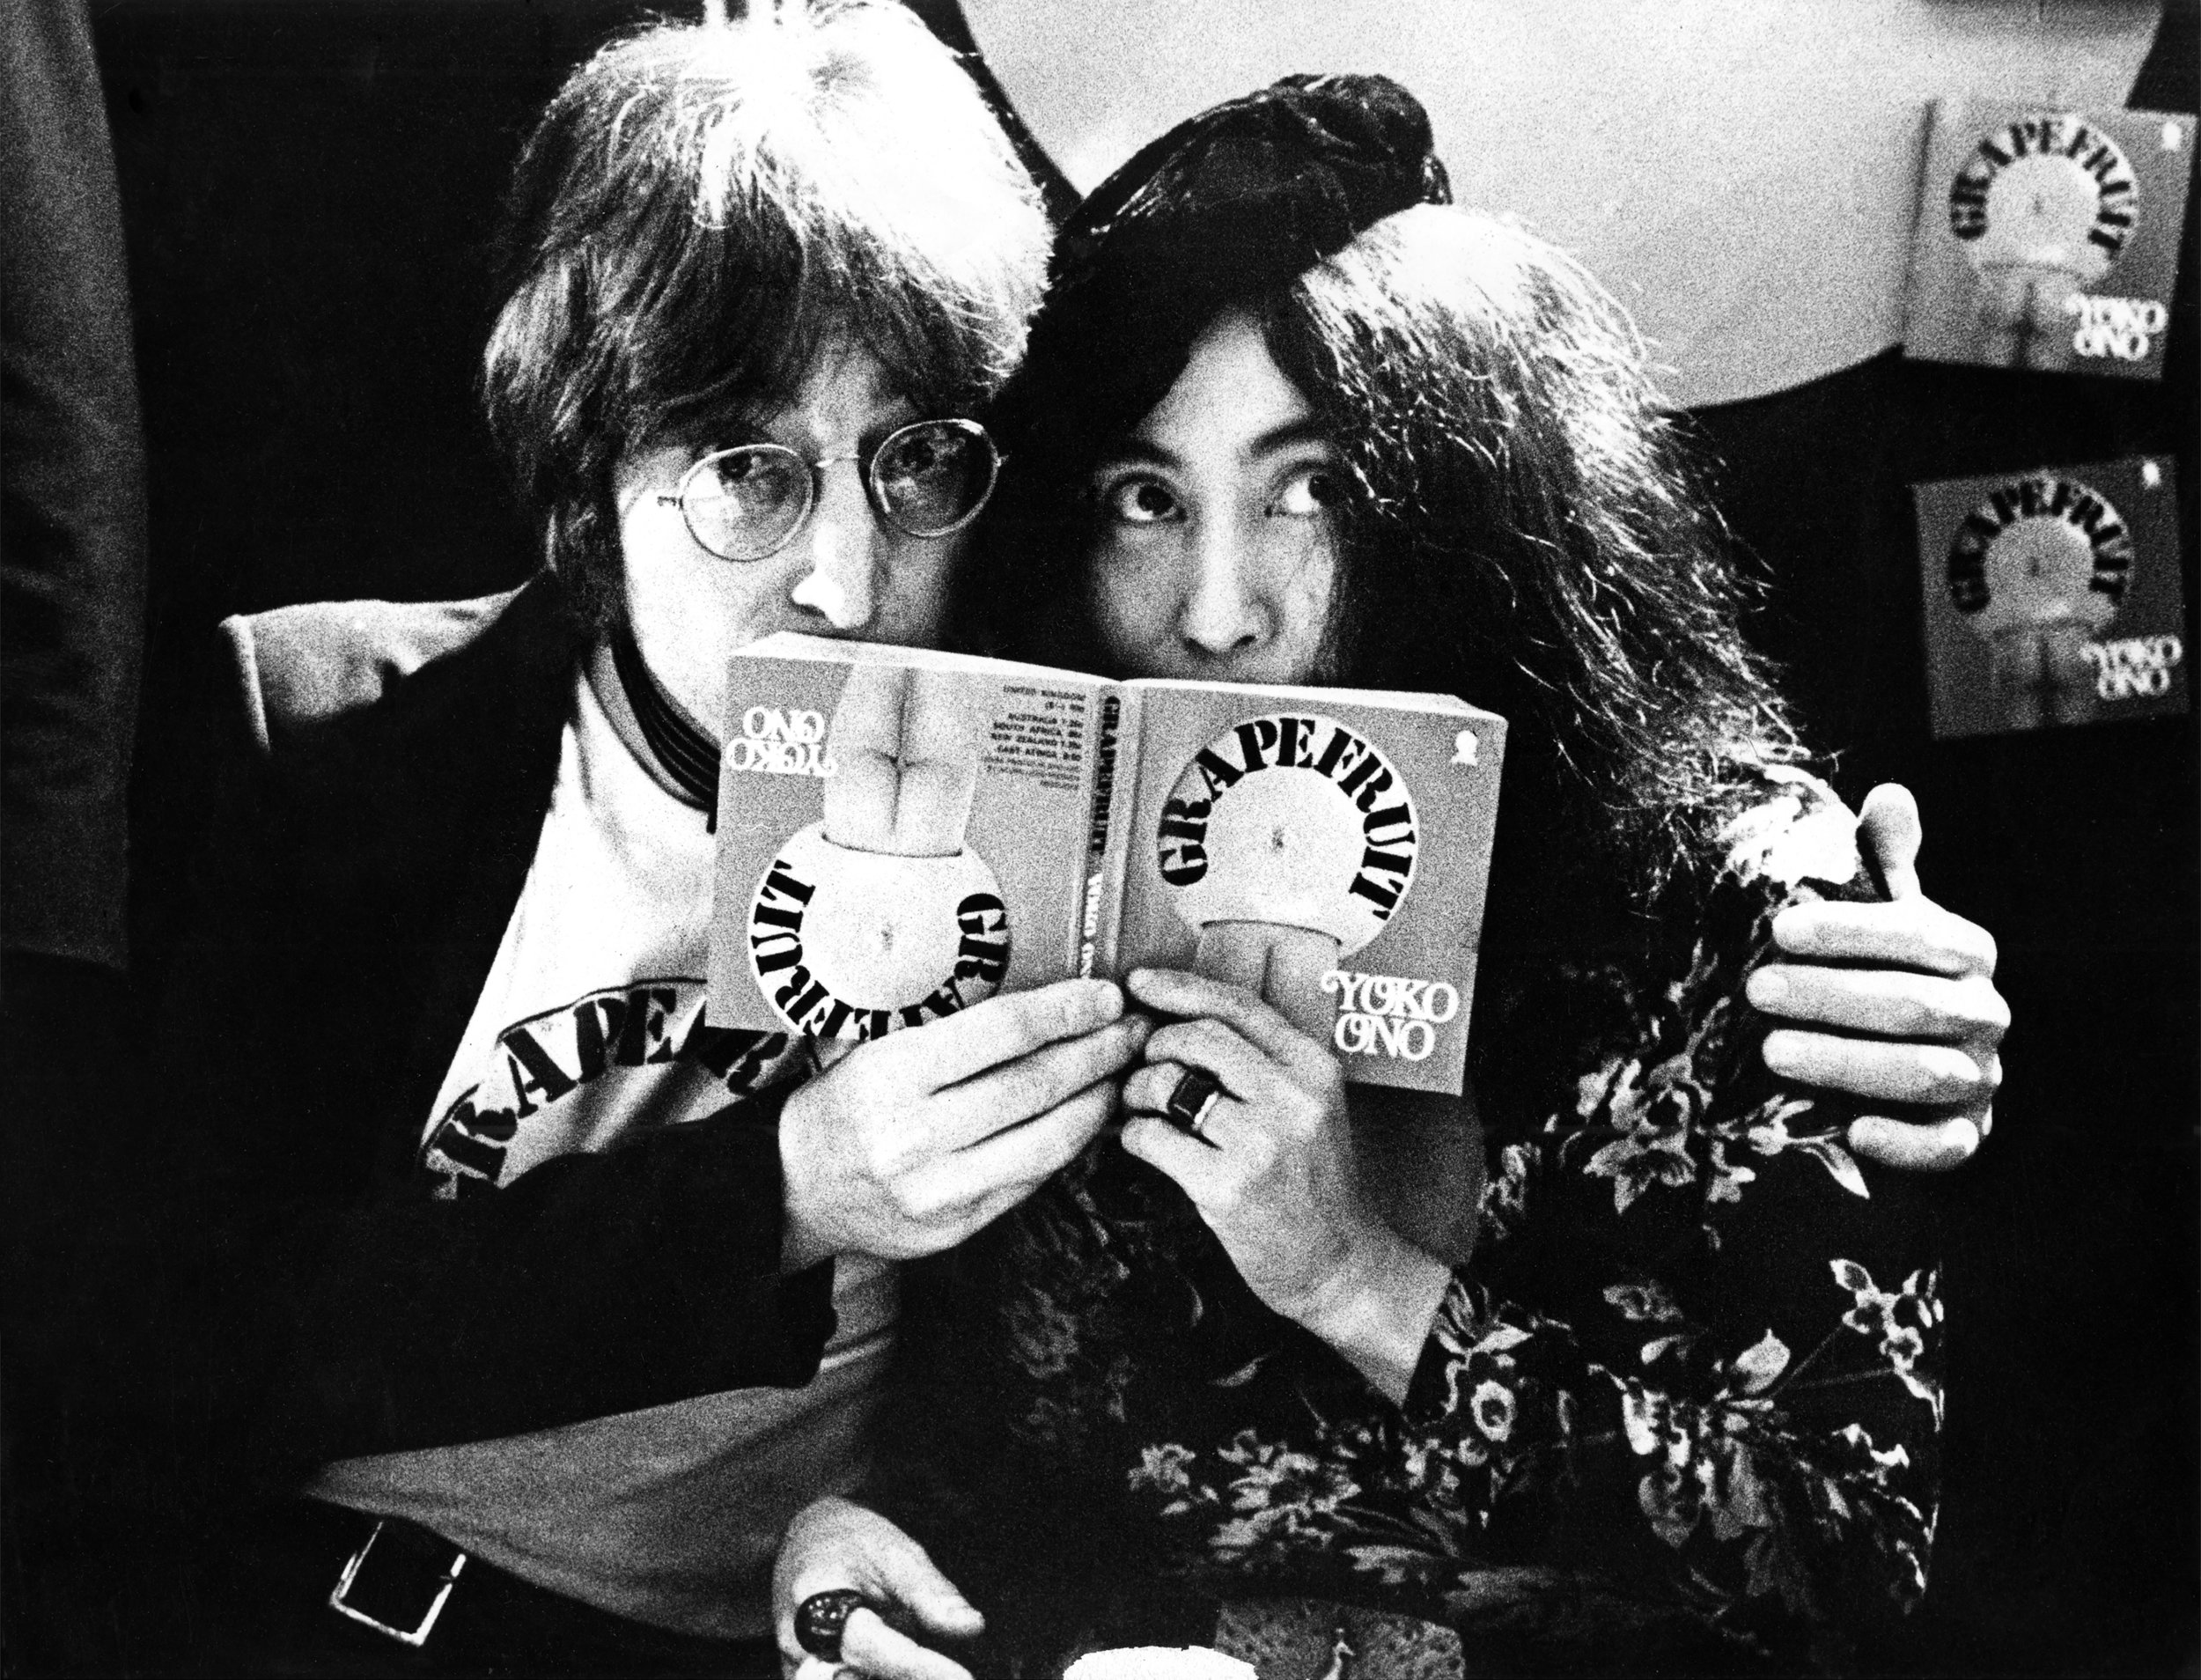 Gijsbert Hanekroot 'John Lennon : Yoko Ono' (UK, 1971) Courtesy Blue Lotus Gallery.jpg